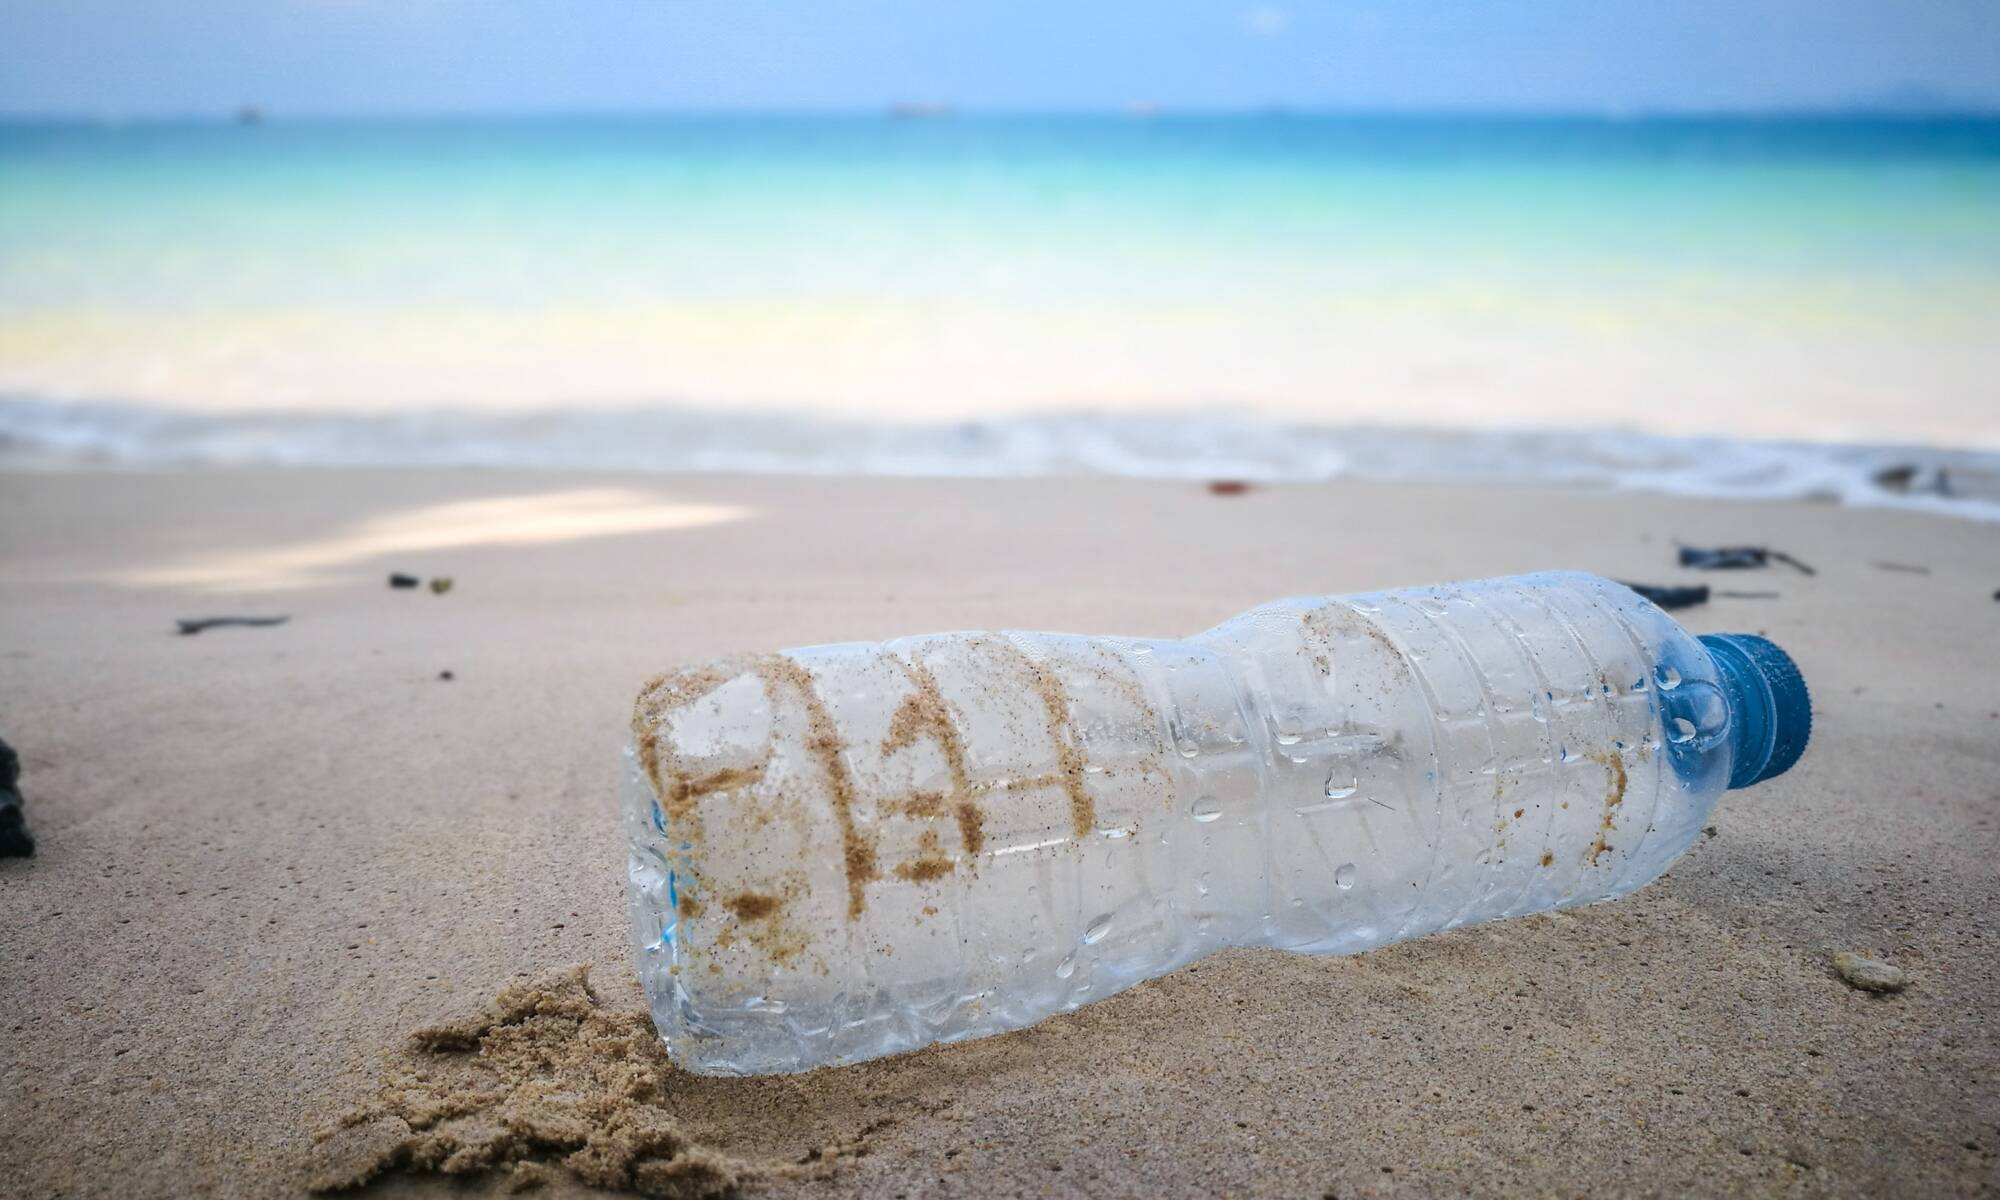 How Does Plastic Packaging Affect the Environment?